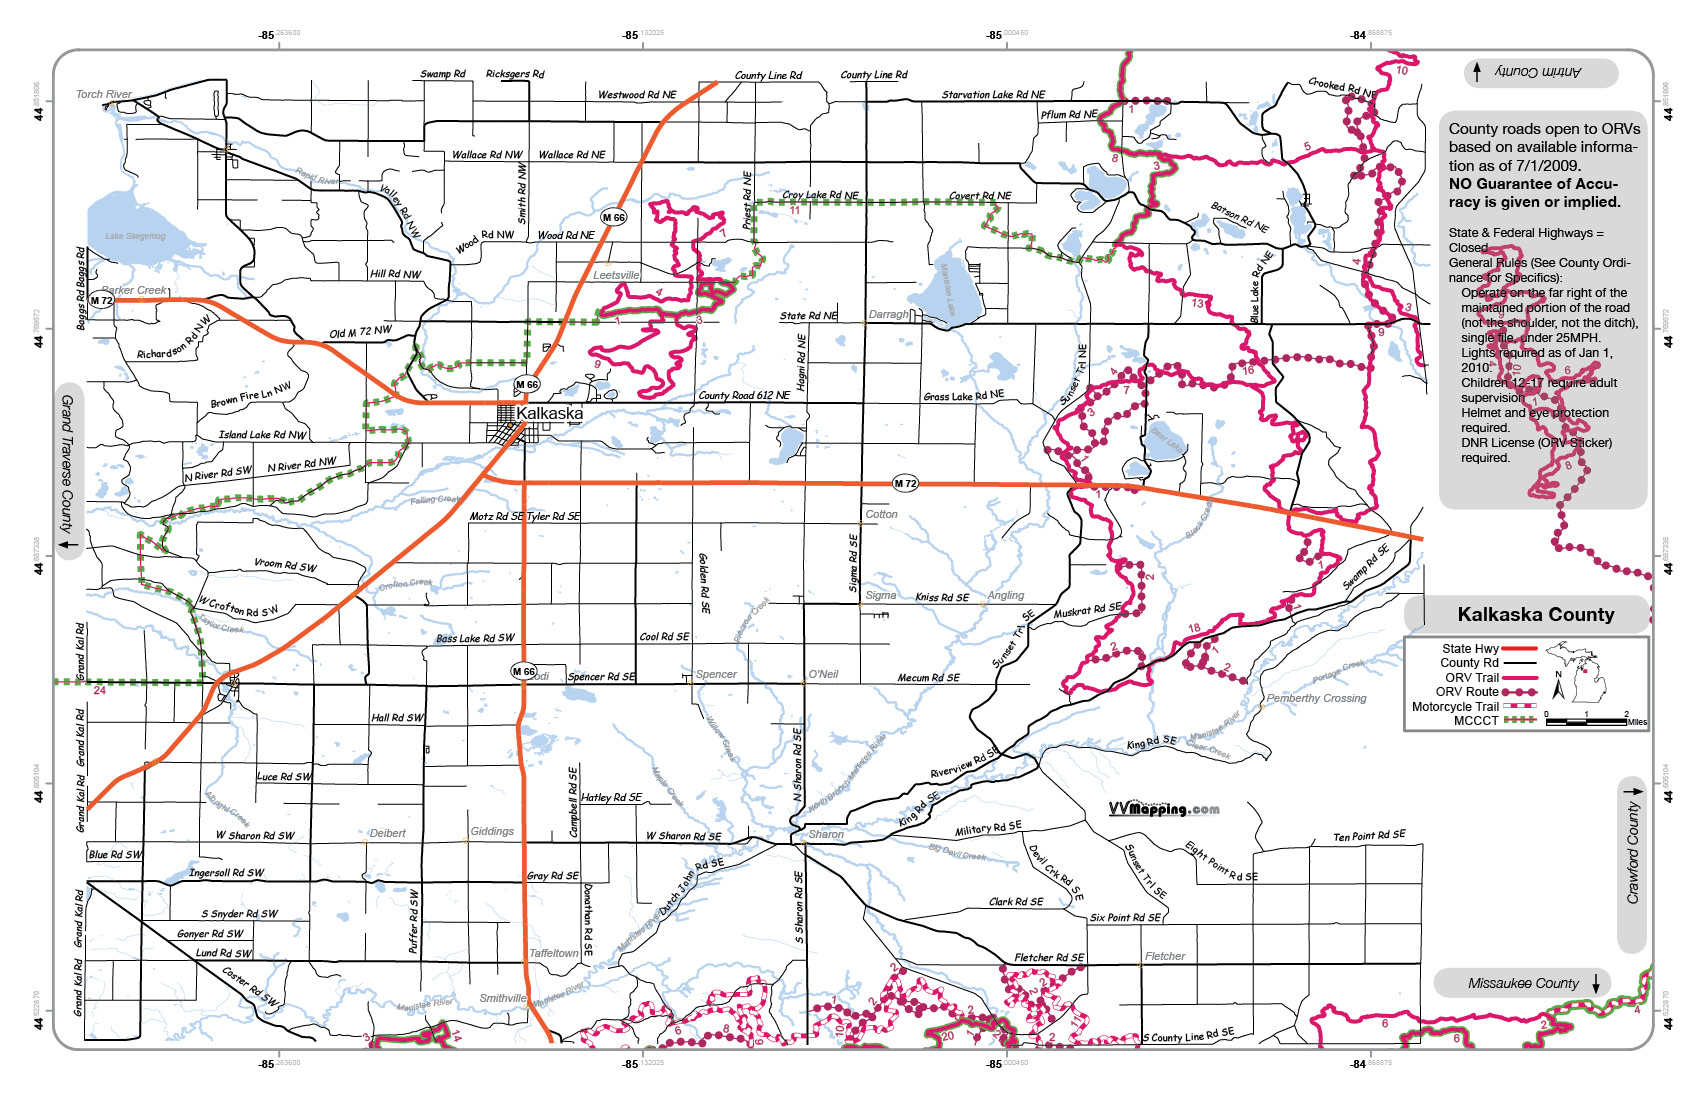 kalkaska county Search 400 kalkaska county michigan properties for sale, including farms, ranches, recreational property, hunting property and more | page 1 of 14 | lands of america.